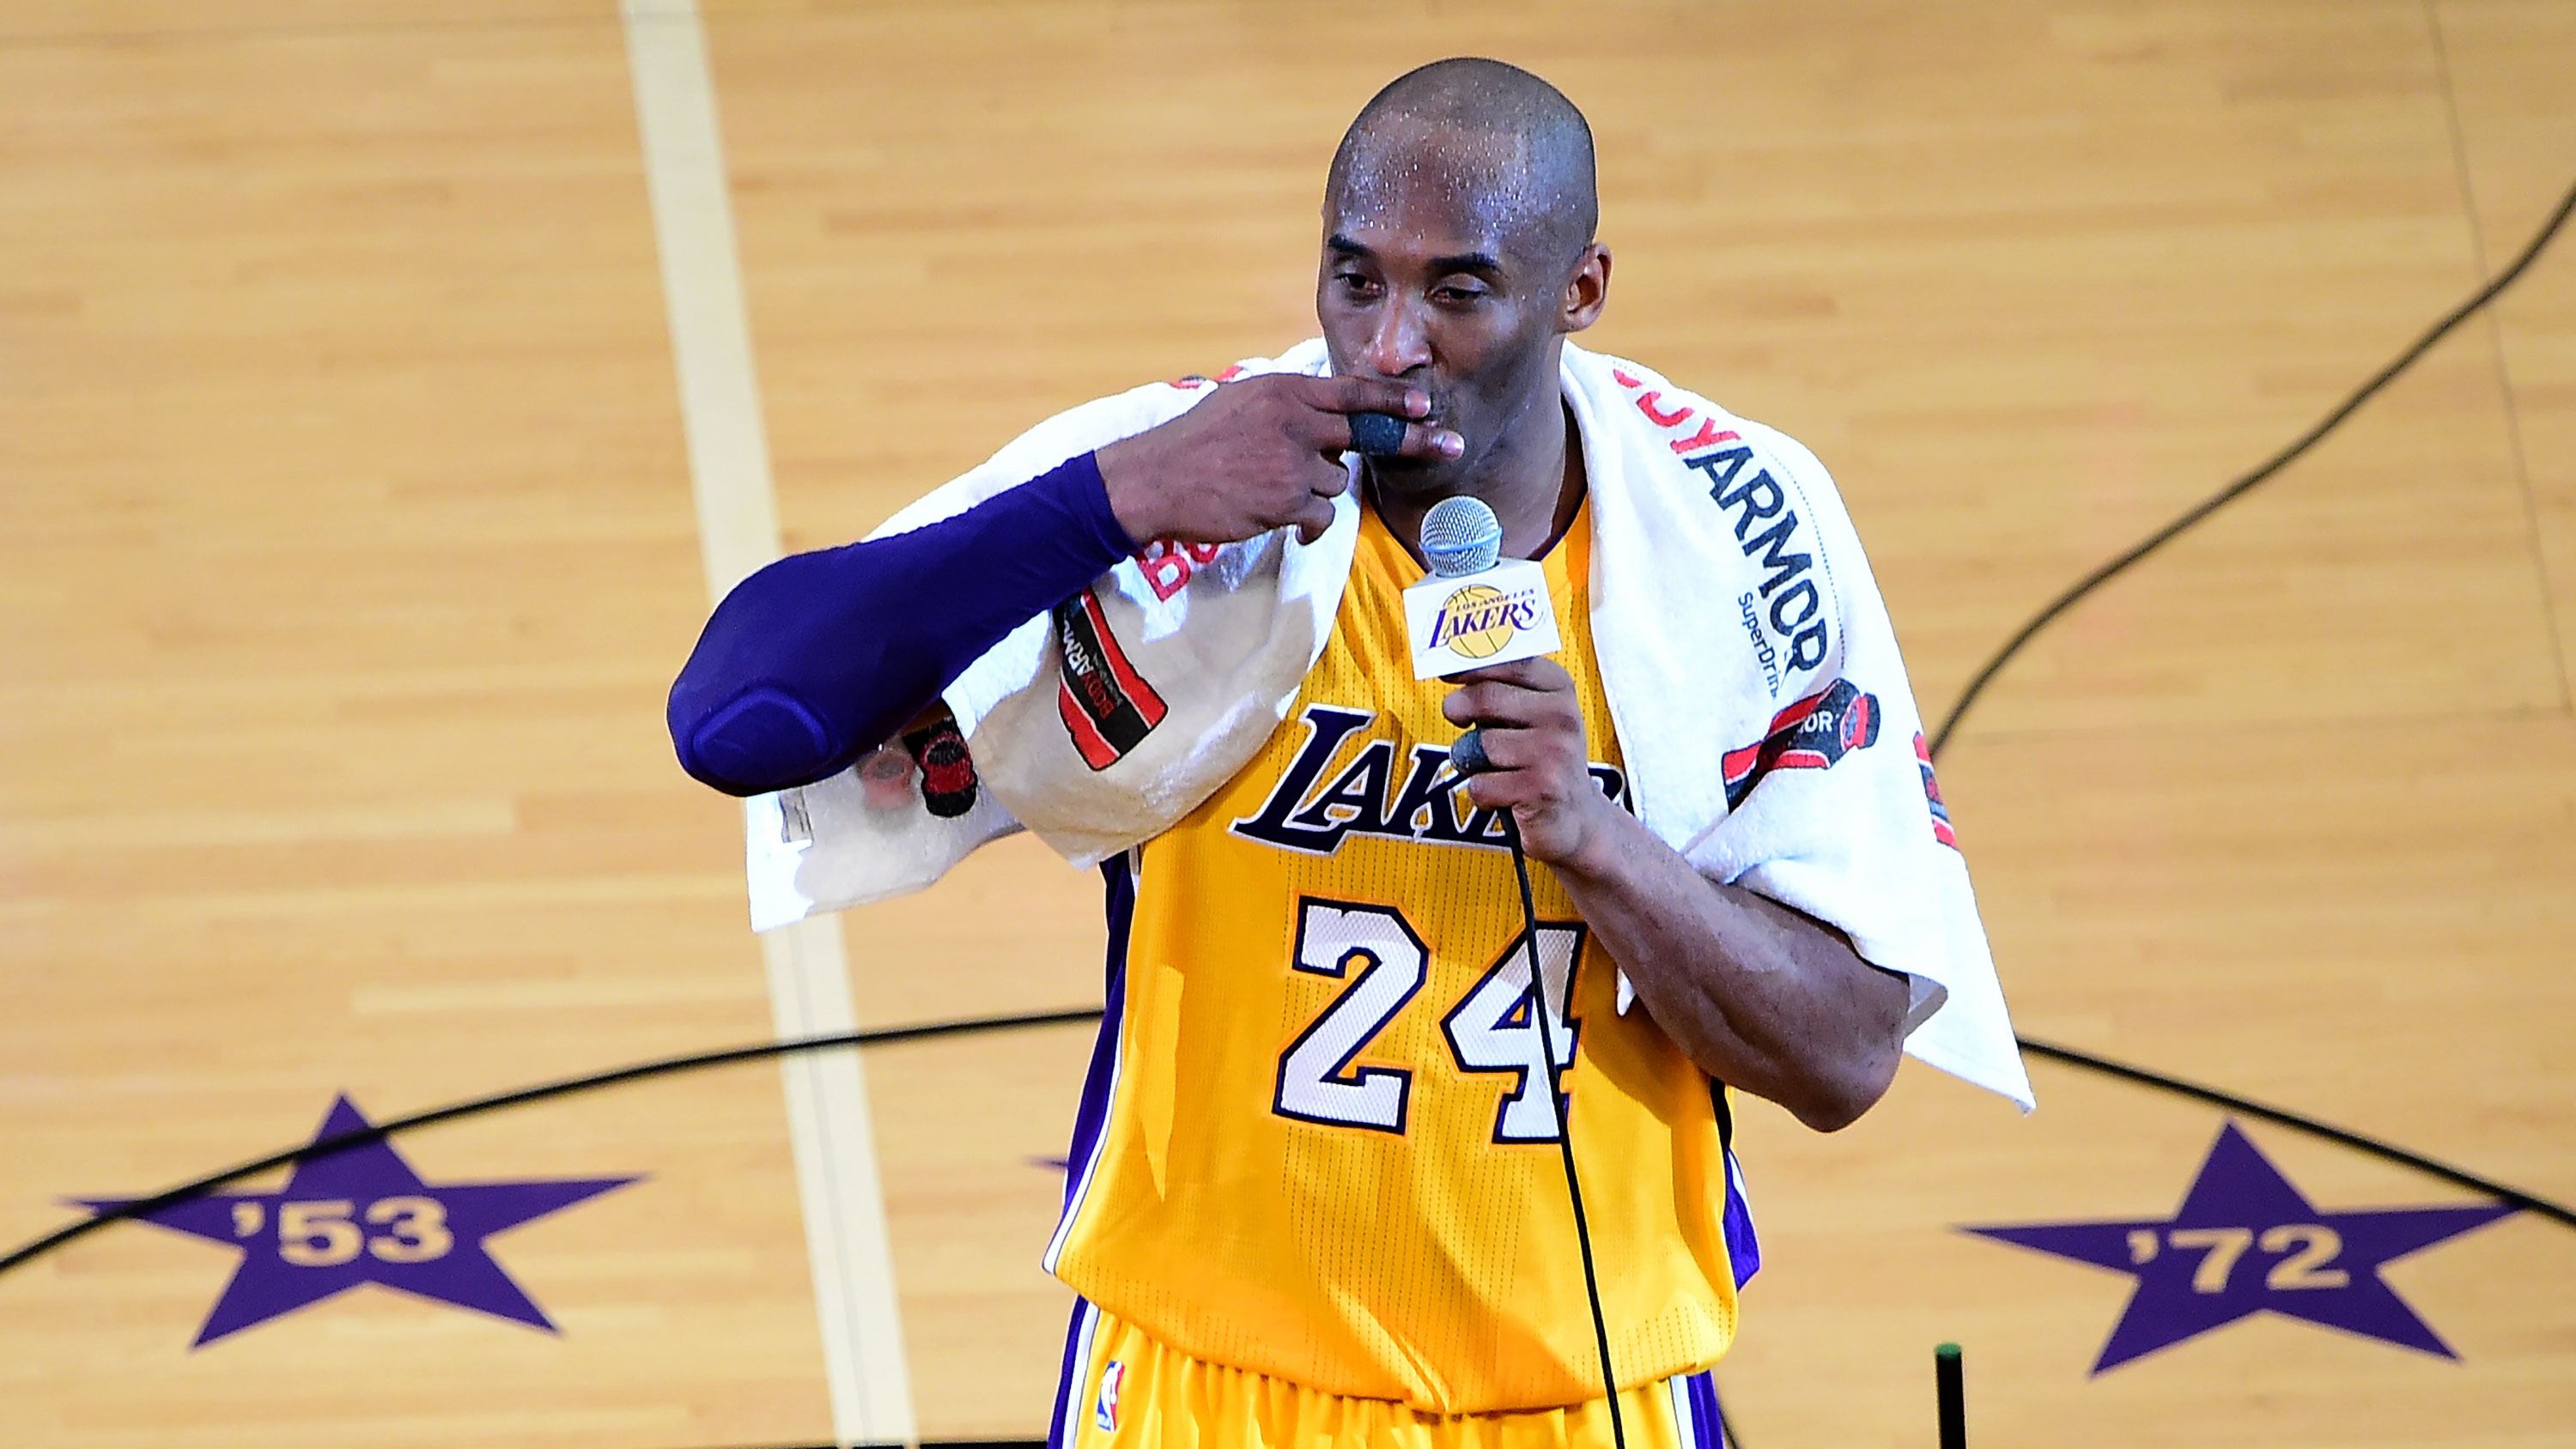 A towel Kobe Bryant wore during his farewell speech sold at an auction for over $30,000